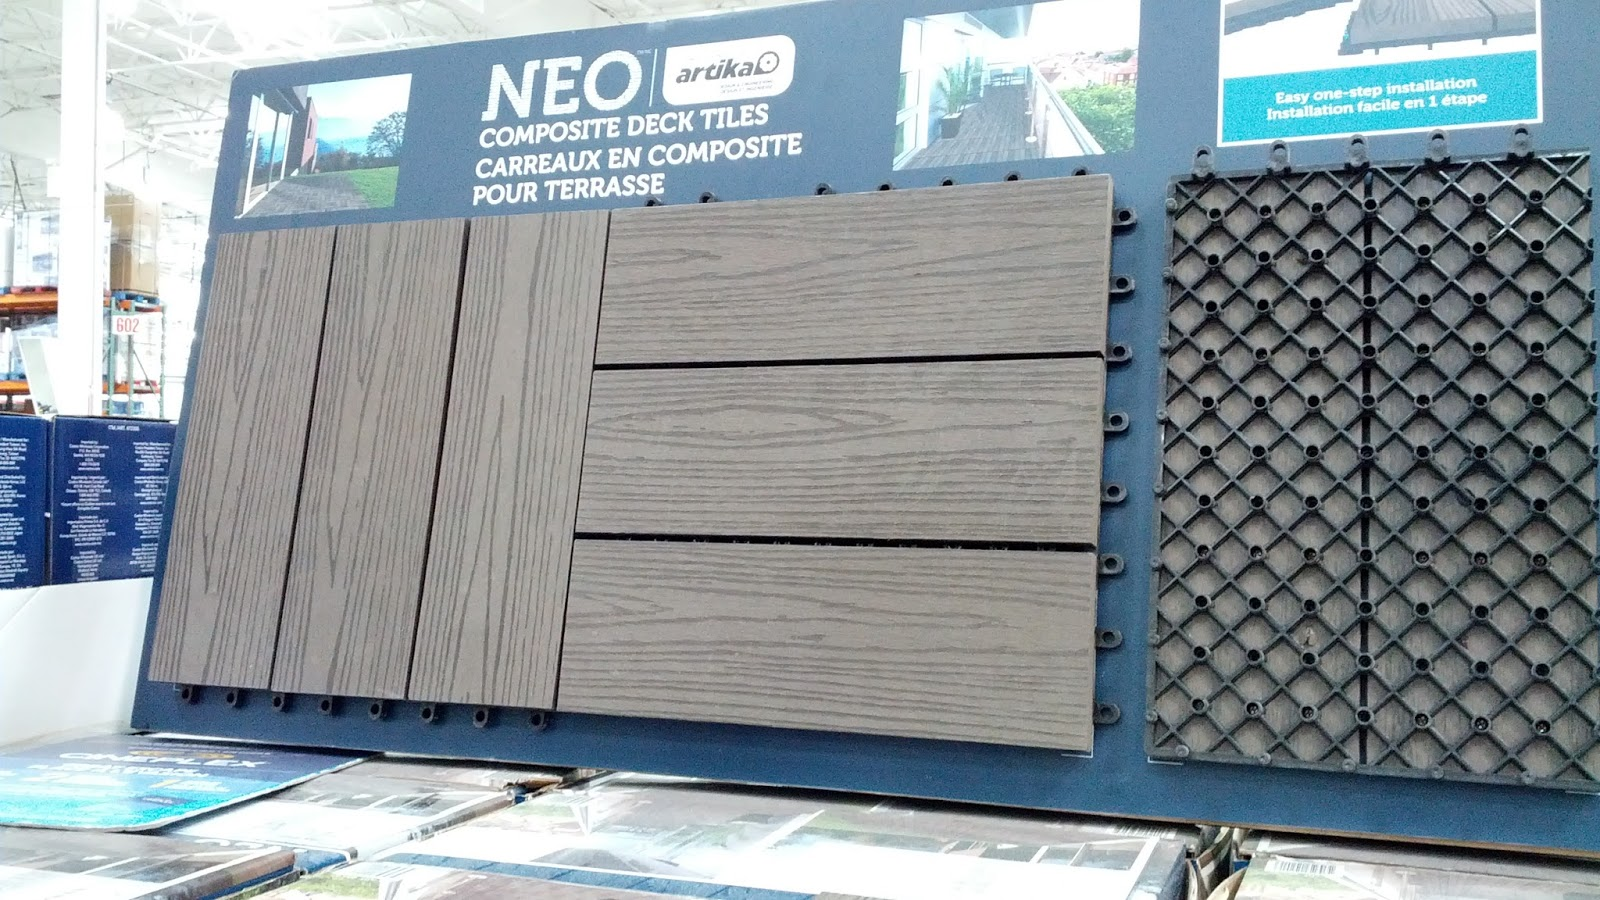 Neo Composite Deck Tiles